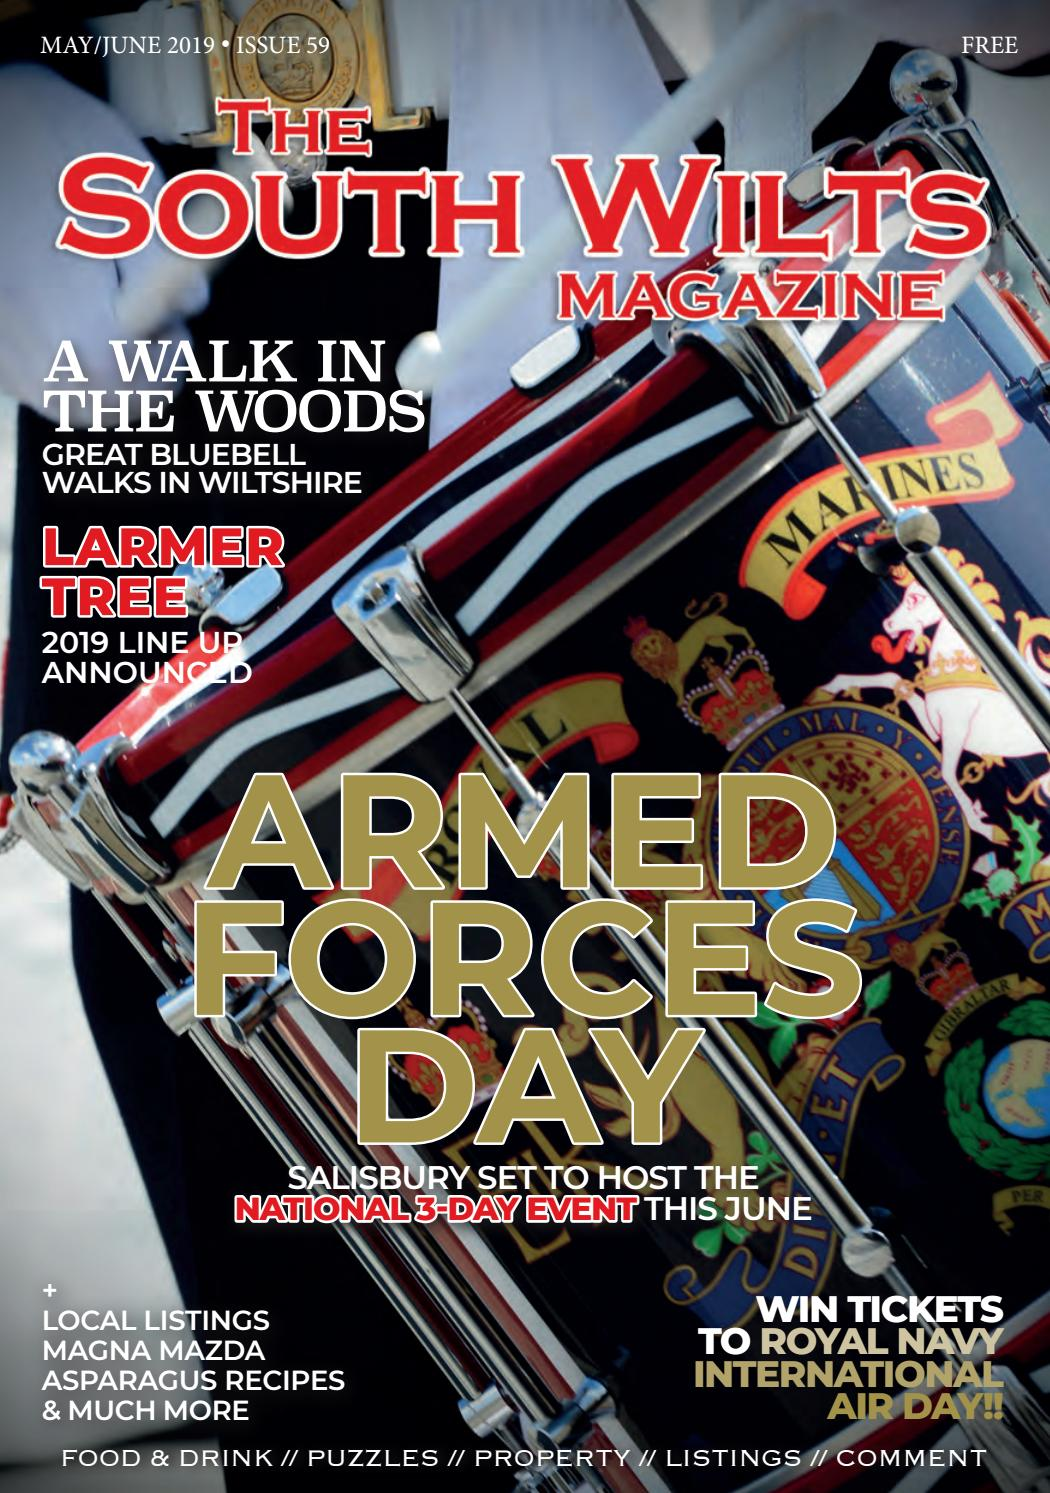 The South Wilts Magazine - May/June 2019 by Lisa Rockliffe